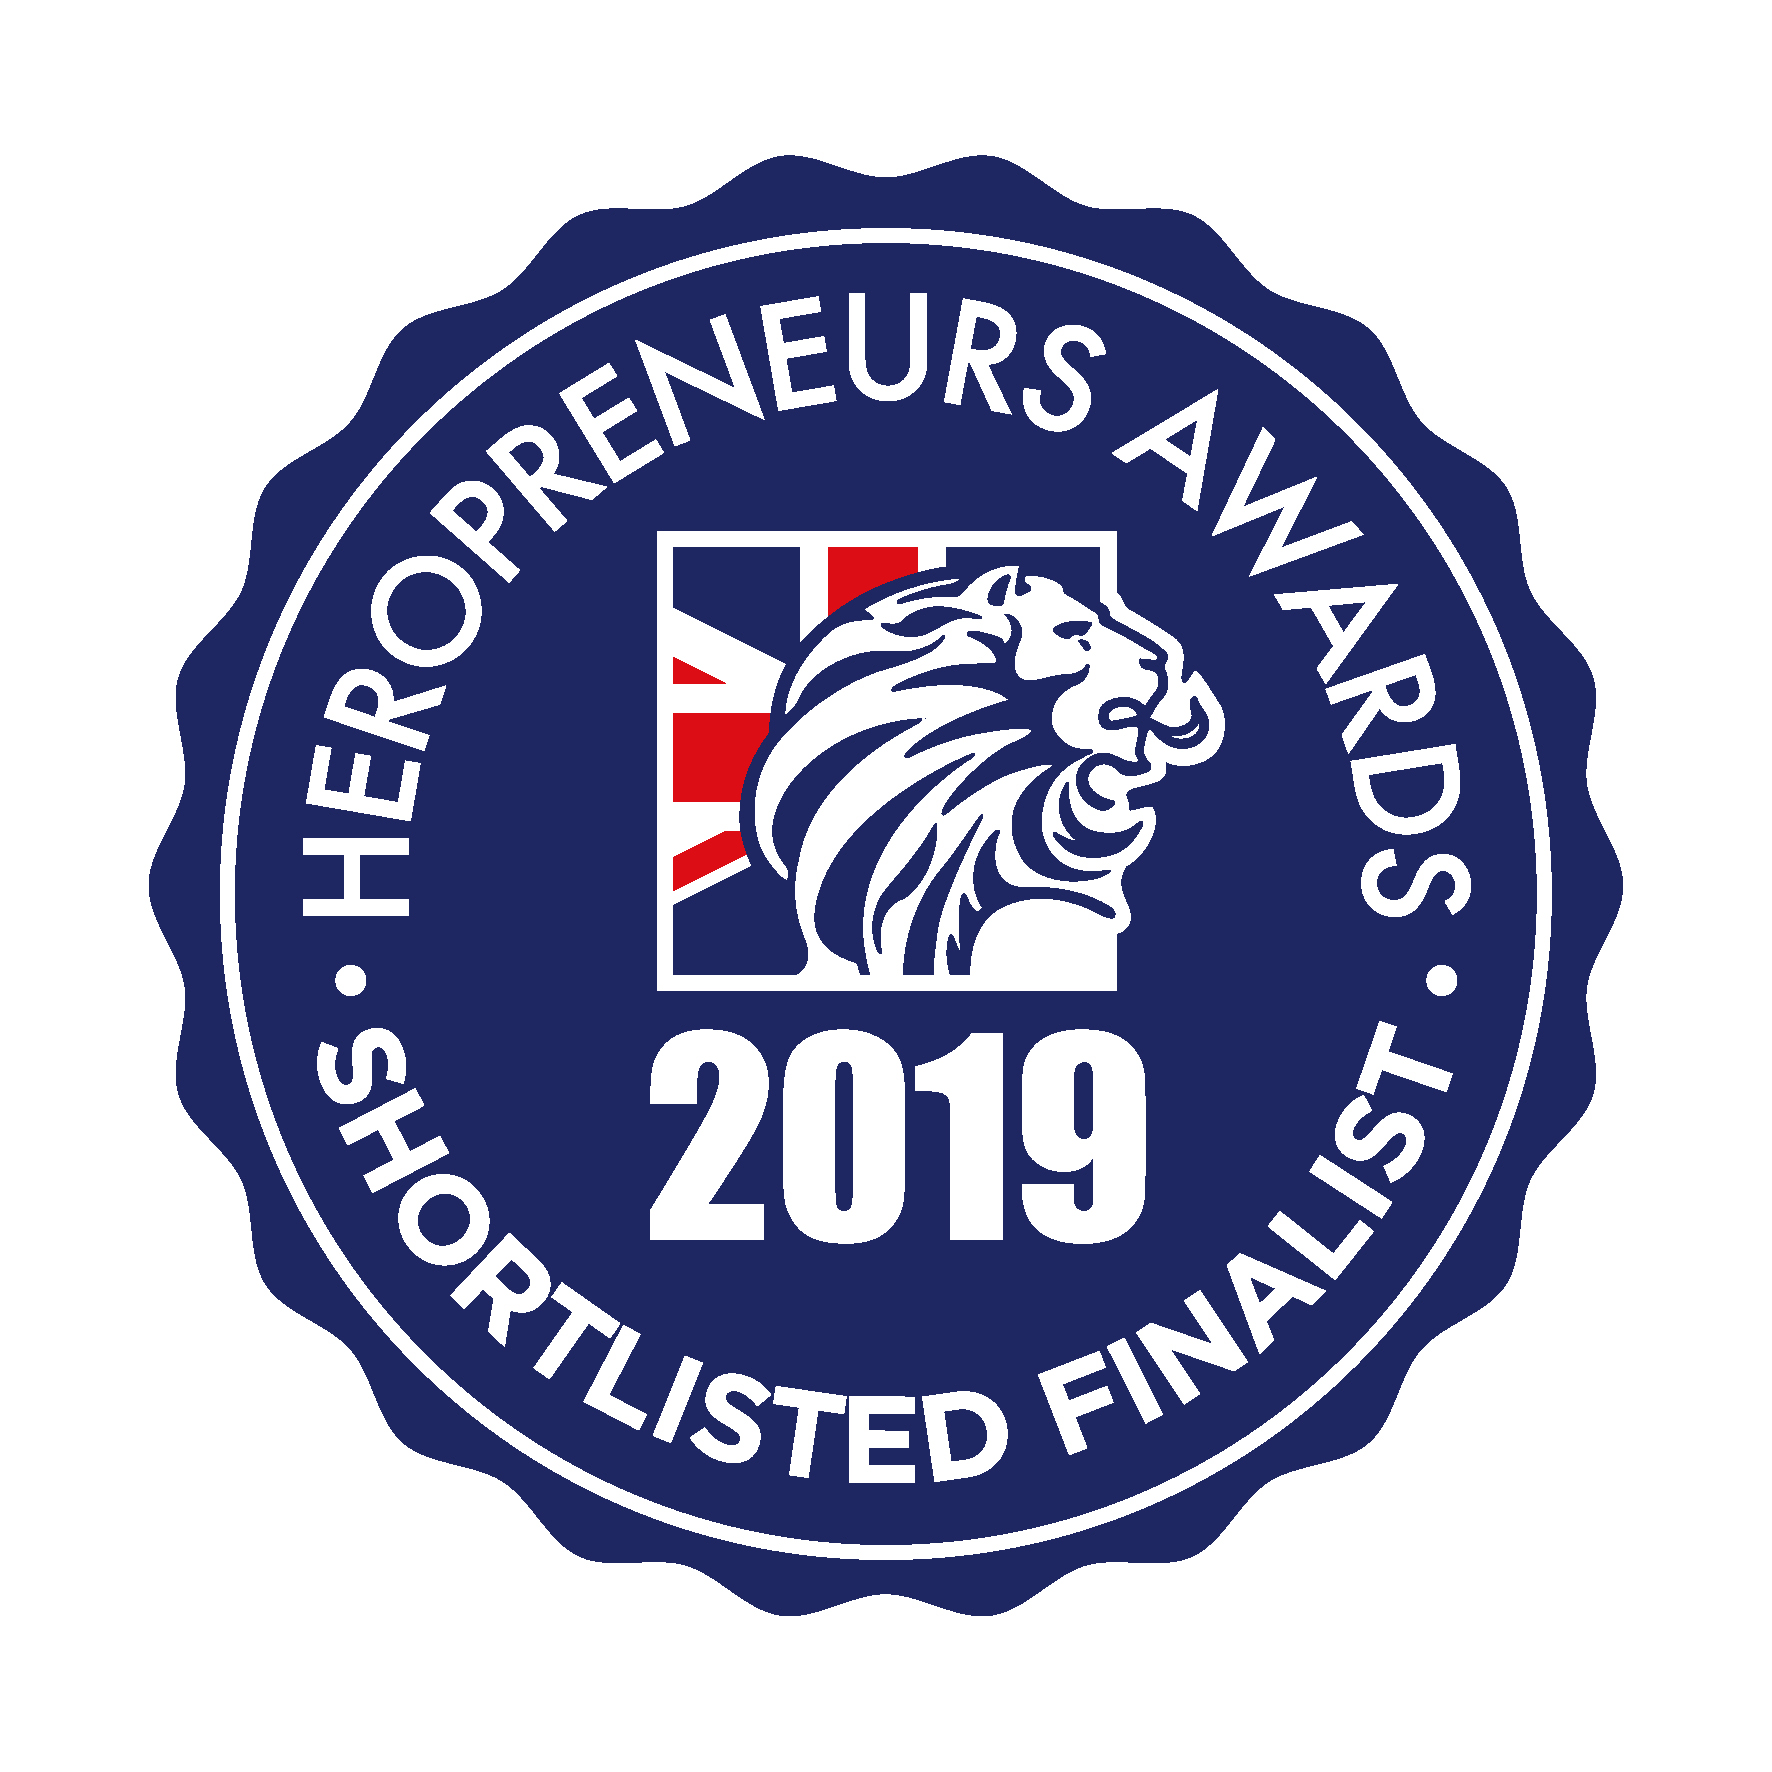 2019 - Digital Stamp Shortlisted Finalist.jpg